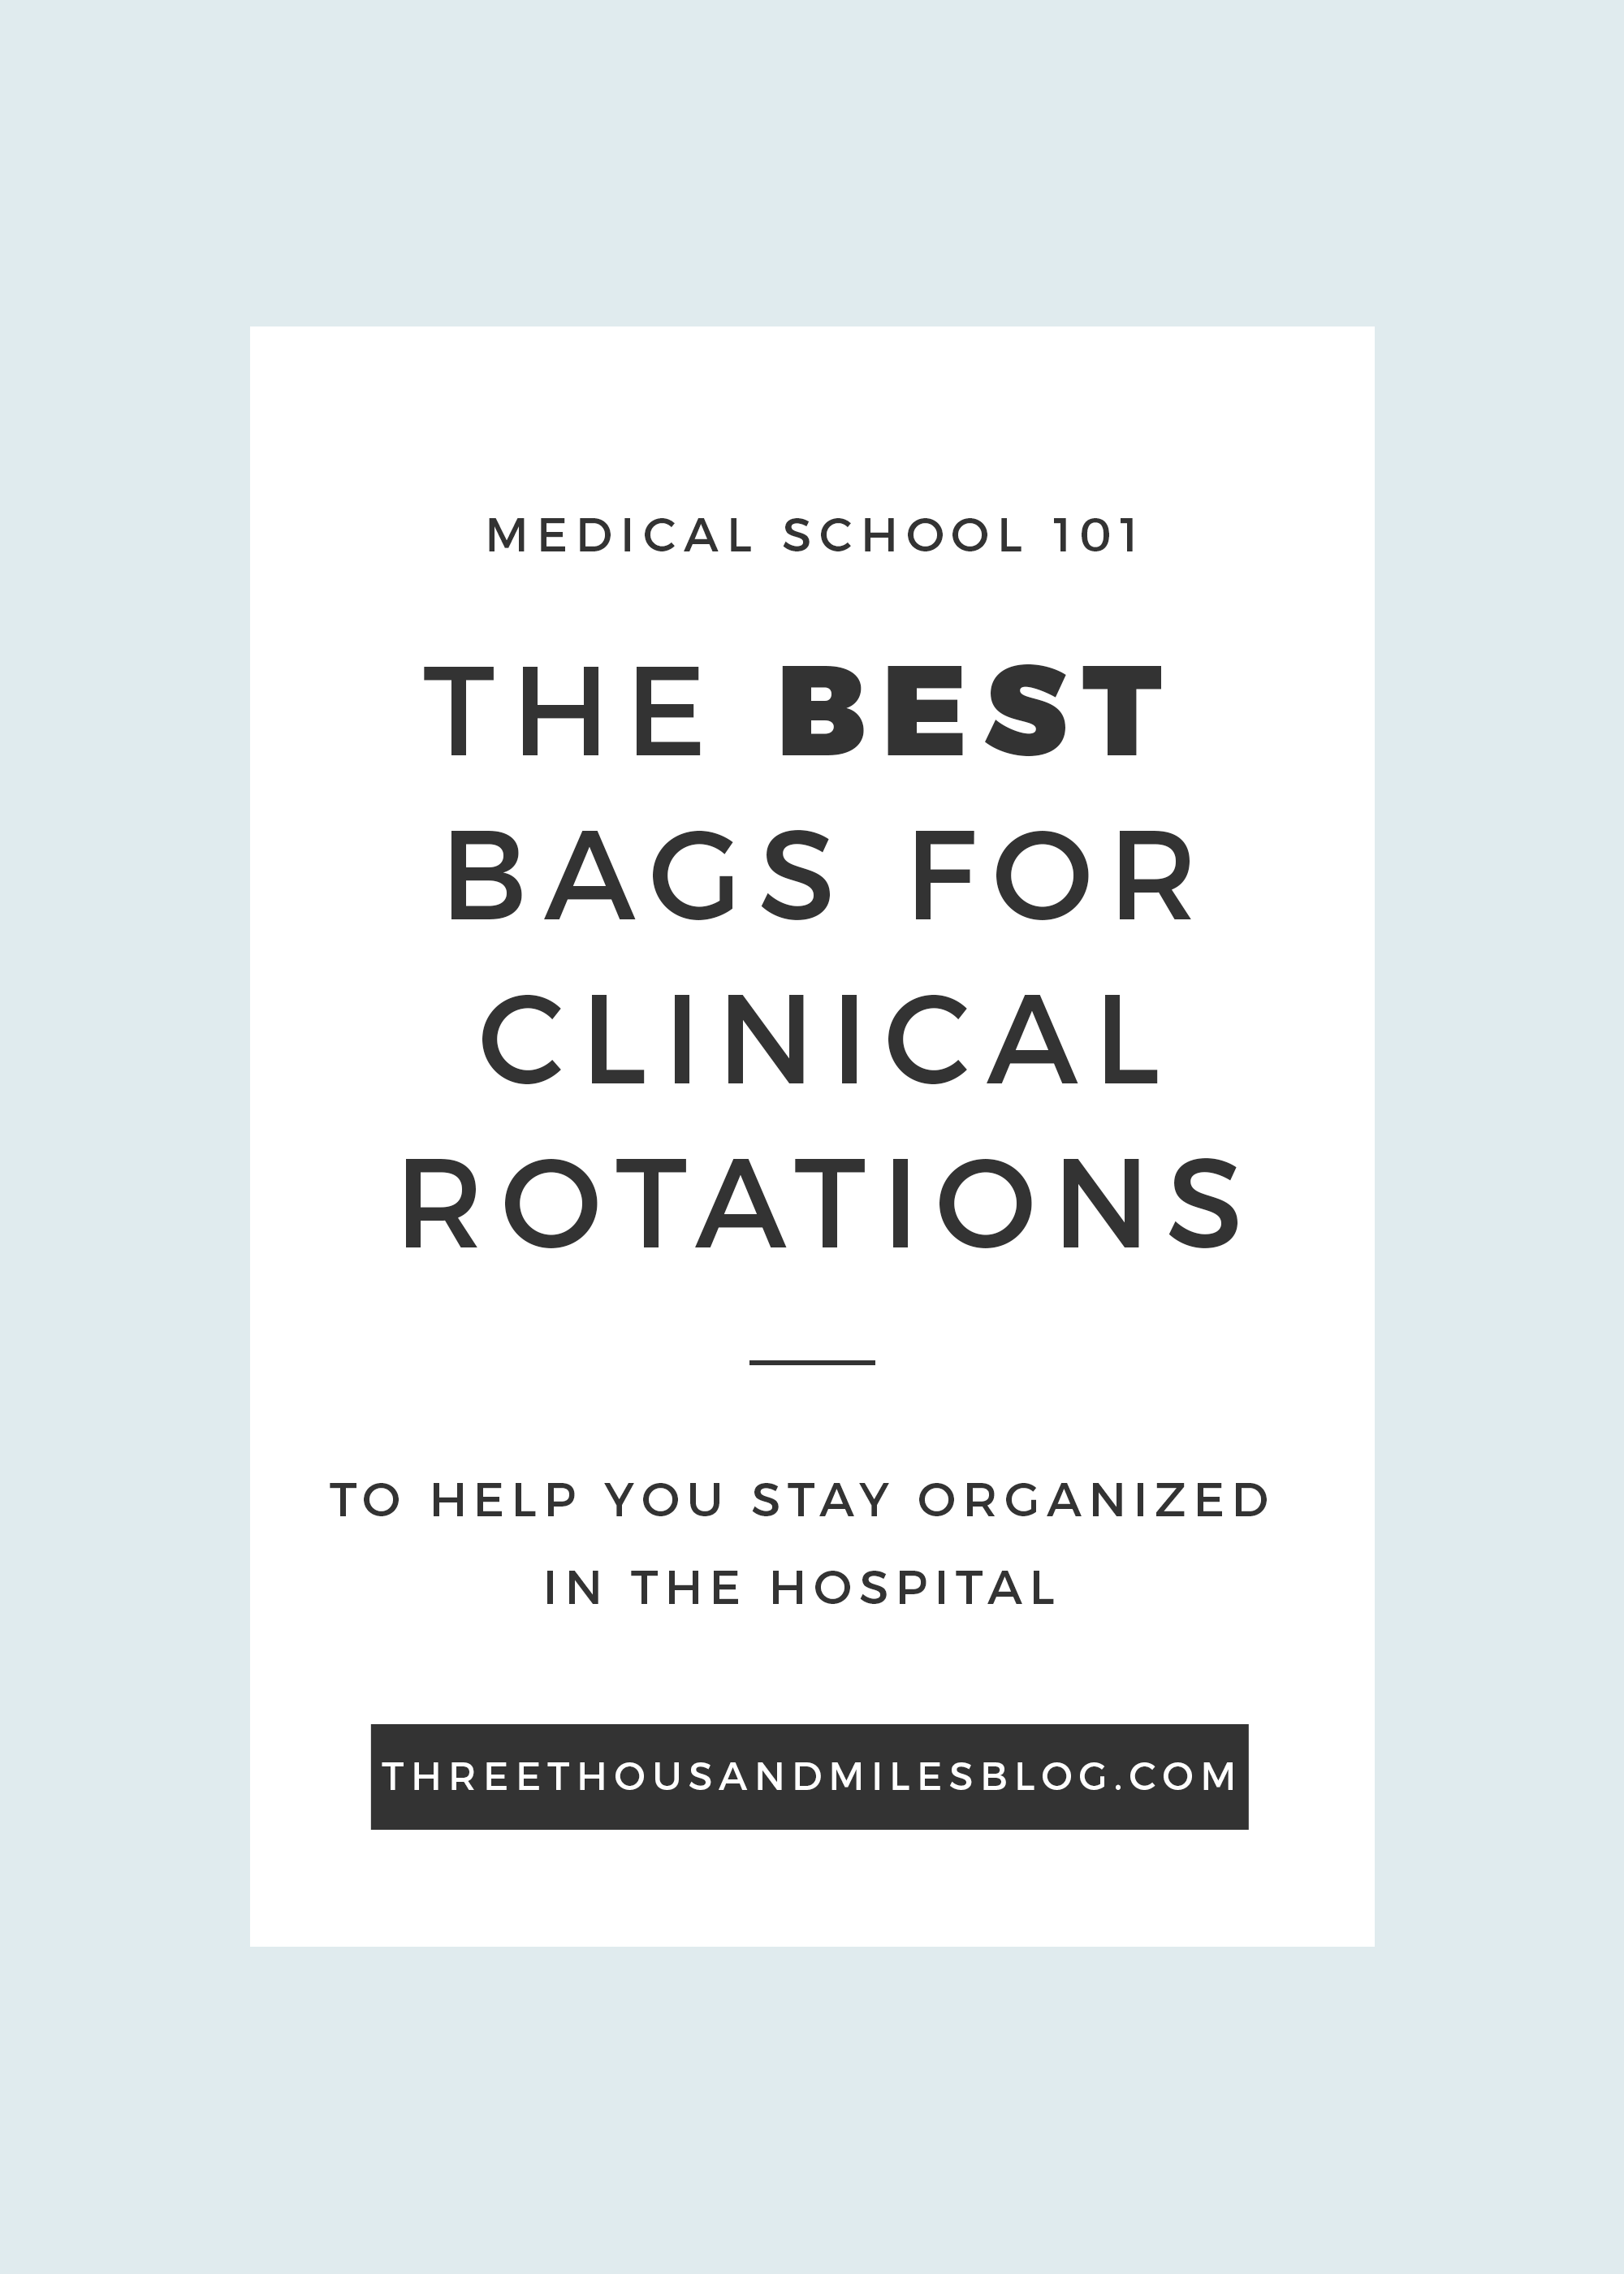 Bags for medical school